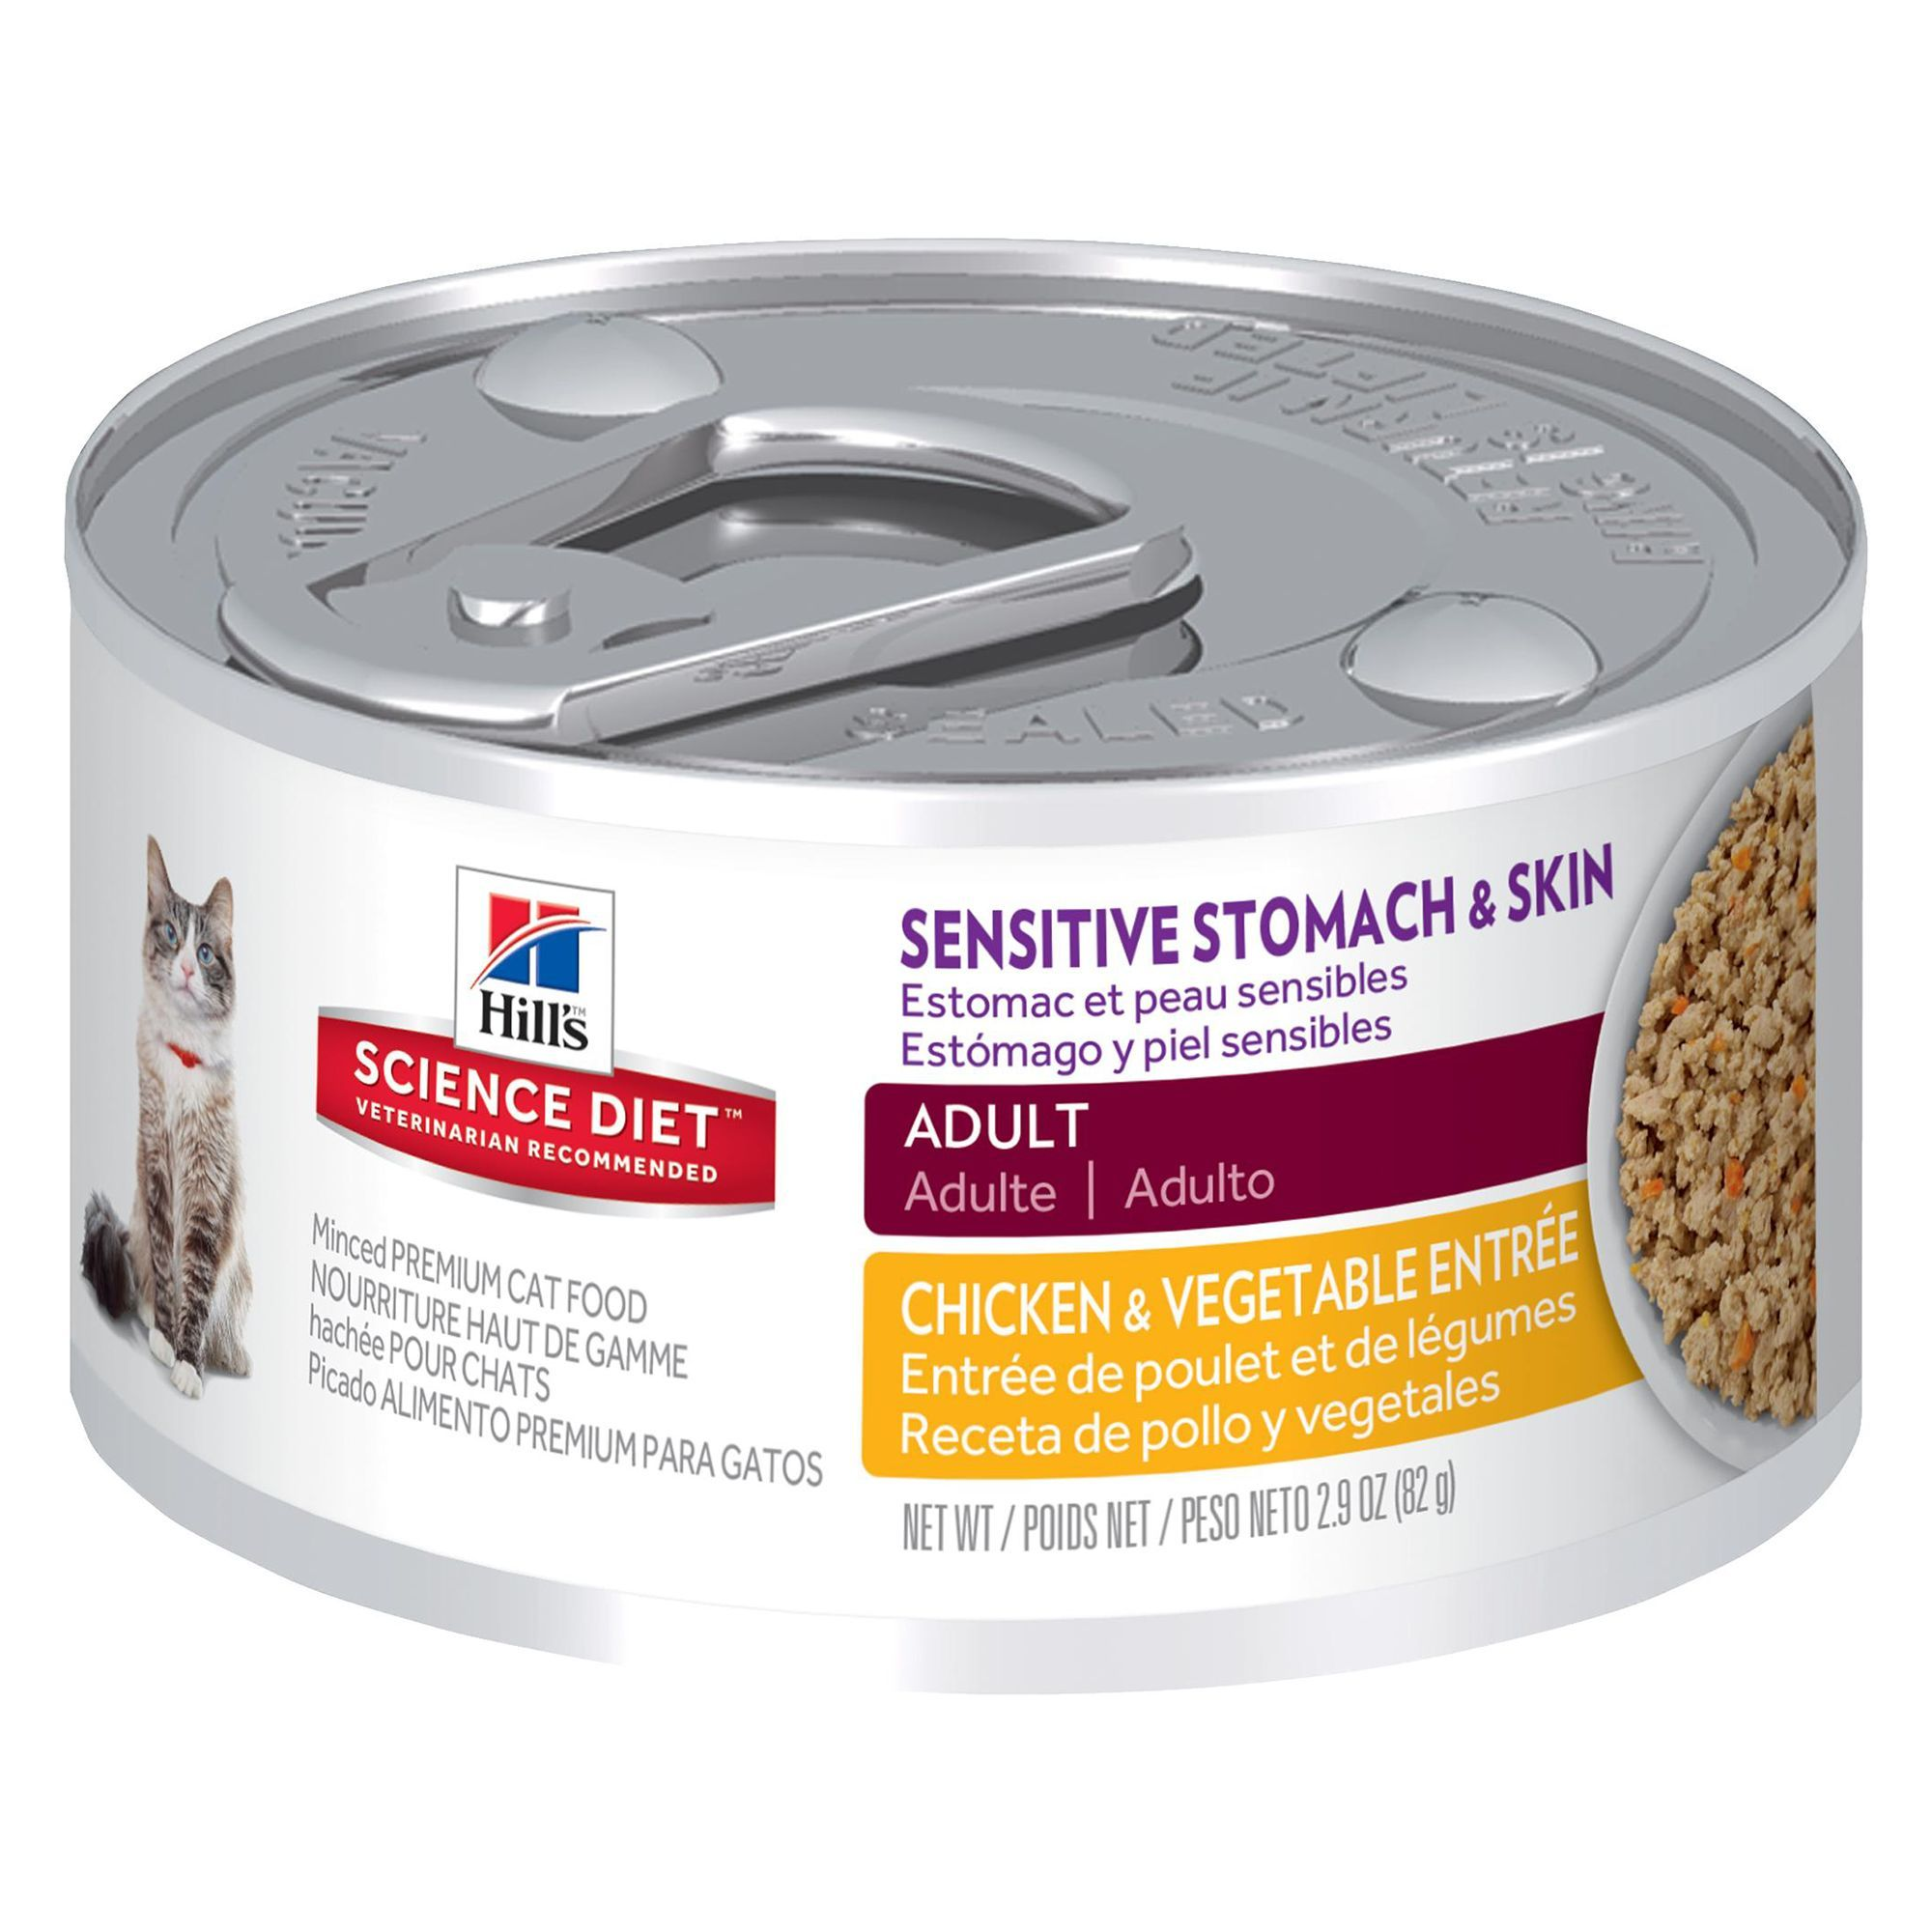 Hill S Science Diet Sensitive Stomach And Skin Adult Cat Food Chicken And Vegetable Size 82 G Copper Green Zinc Cats Including Those With Hills Science Diet Science Diet Canned Cat Food